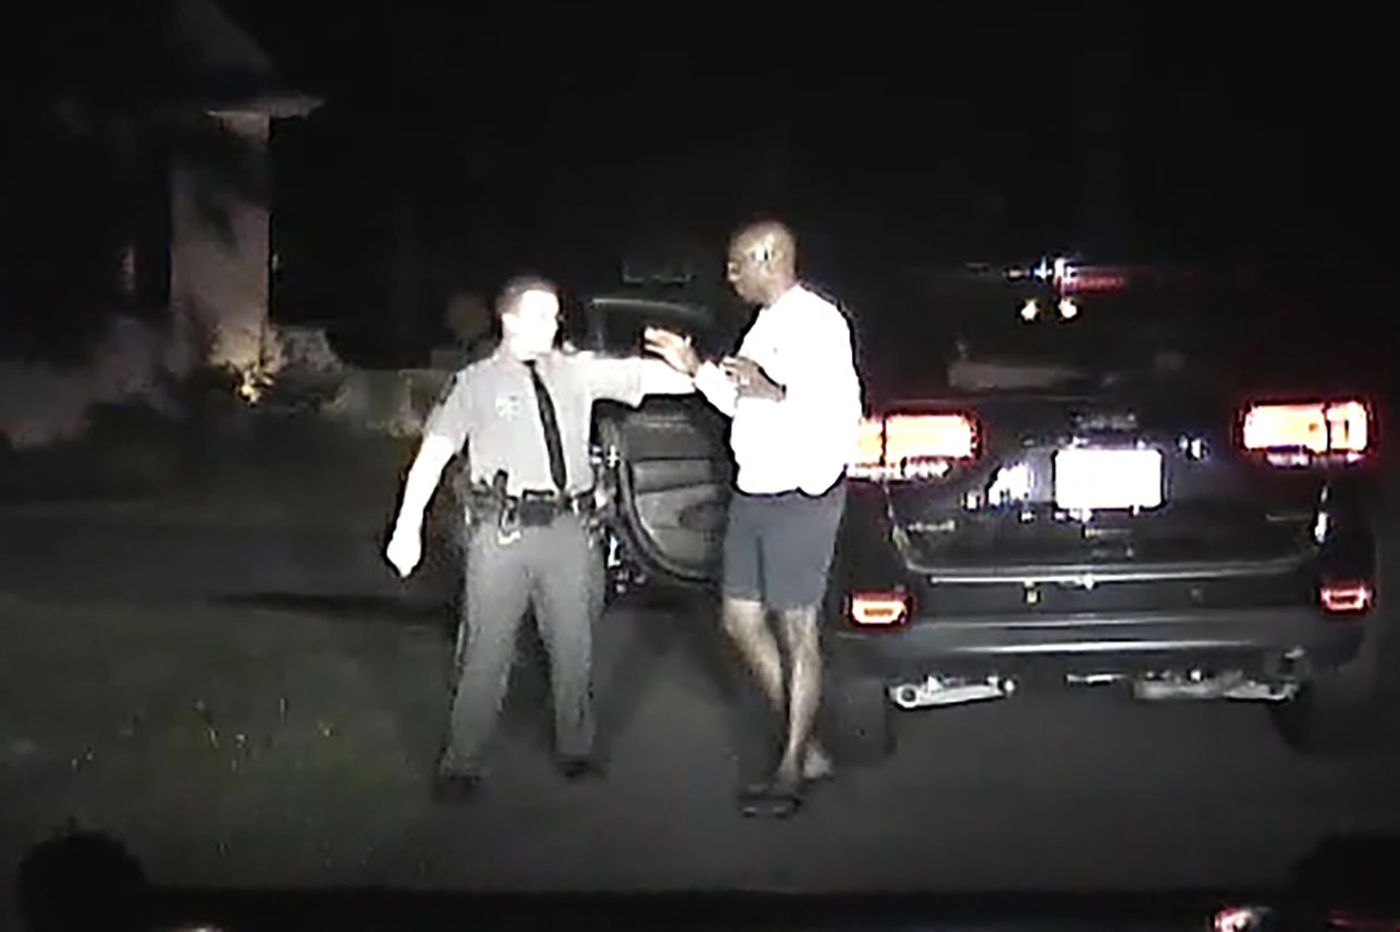 Pa. State Police: Video shows no racial bias in black couple's traffic stop in Chadds Ford driveway